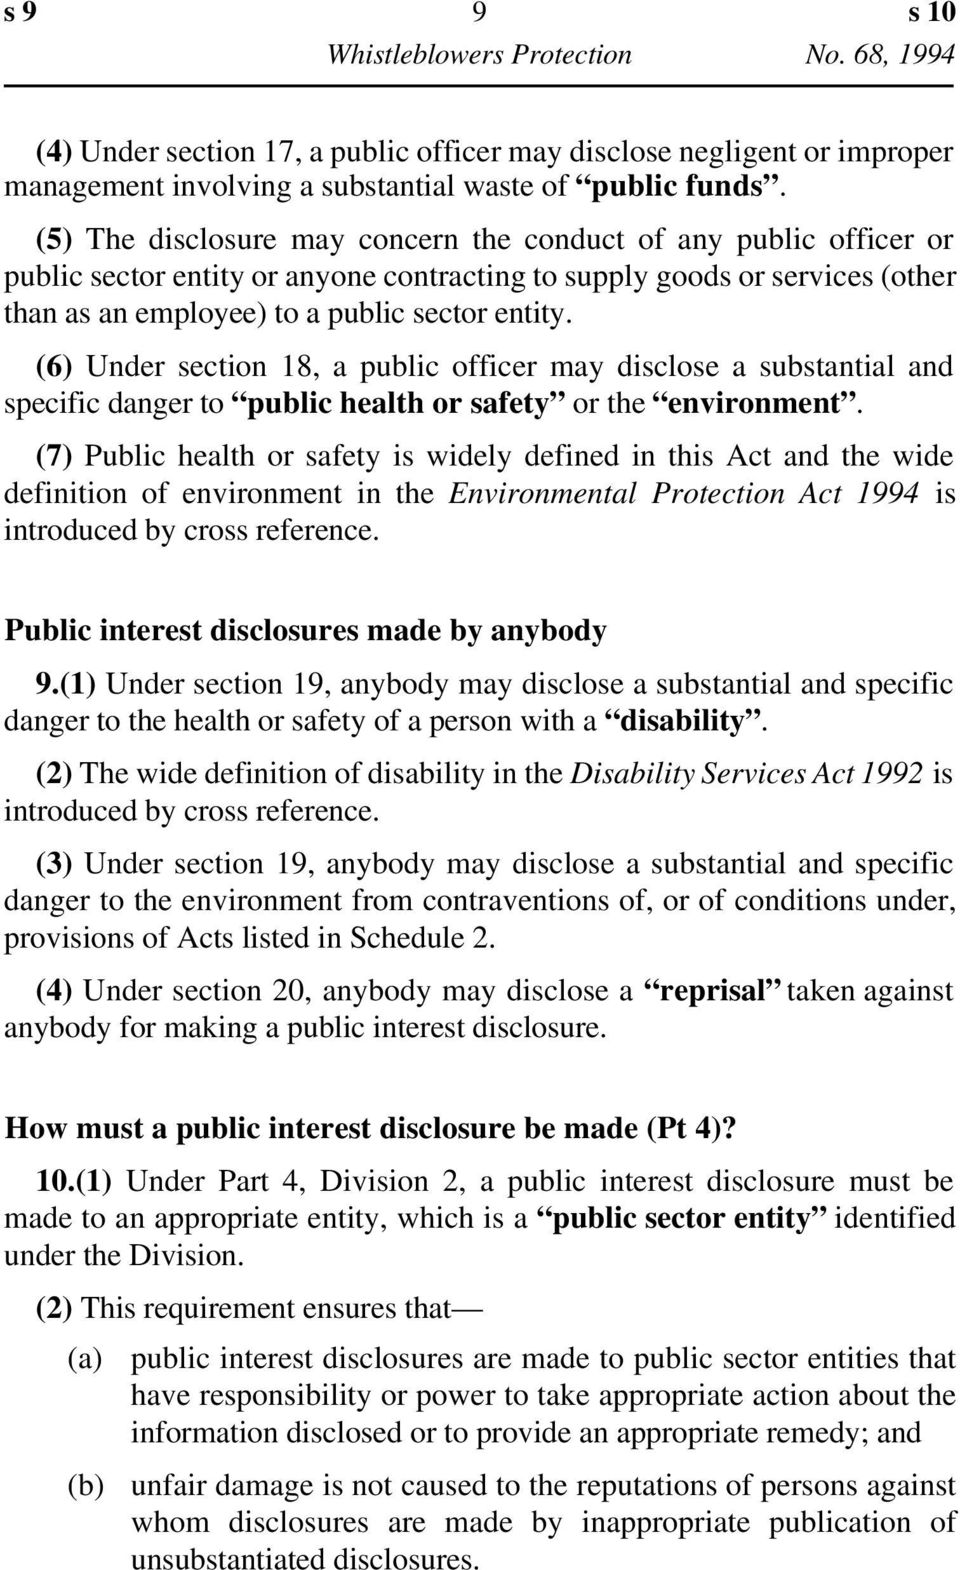 (6) Under section 18, a public officer may disclose a substantial and specific danger to public health or safety or the environment.